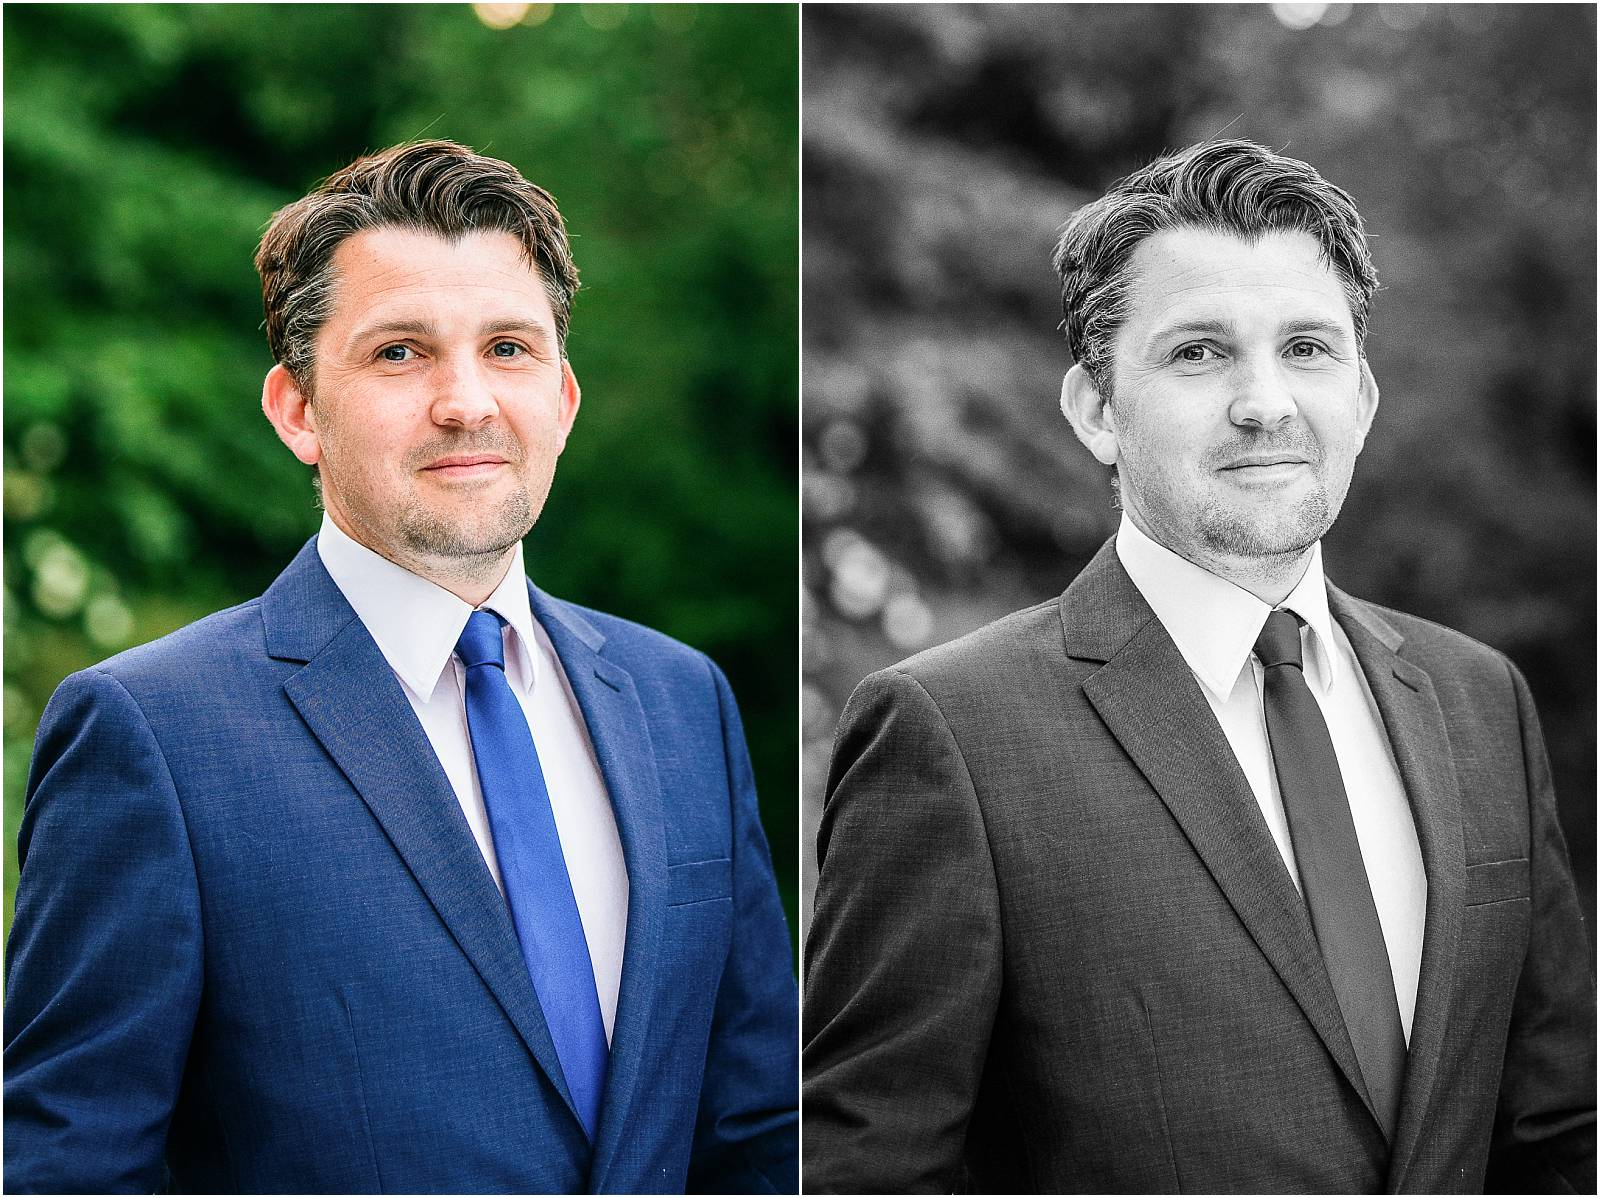 Surrey Headshot Photographer – different styles of business and branding headshots